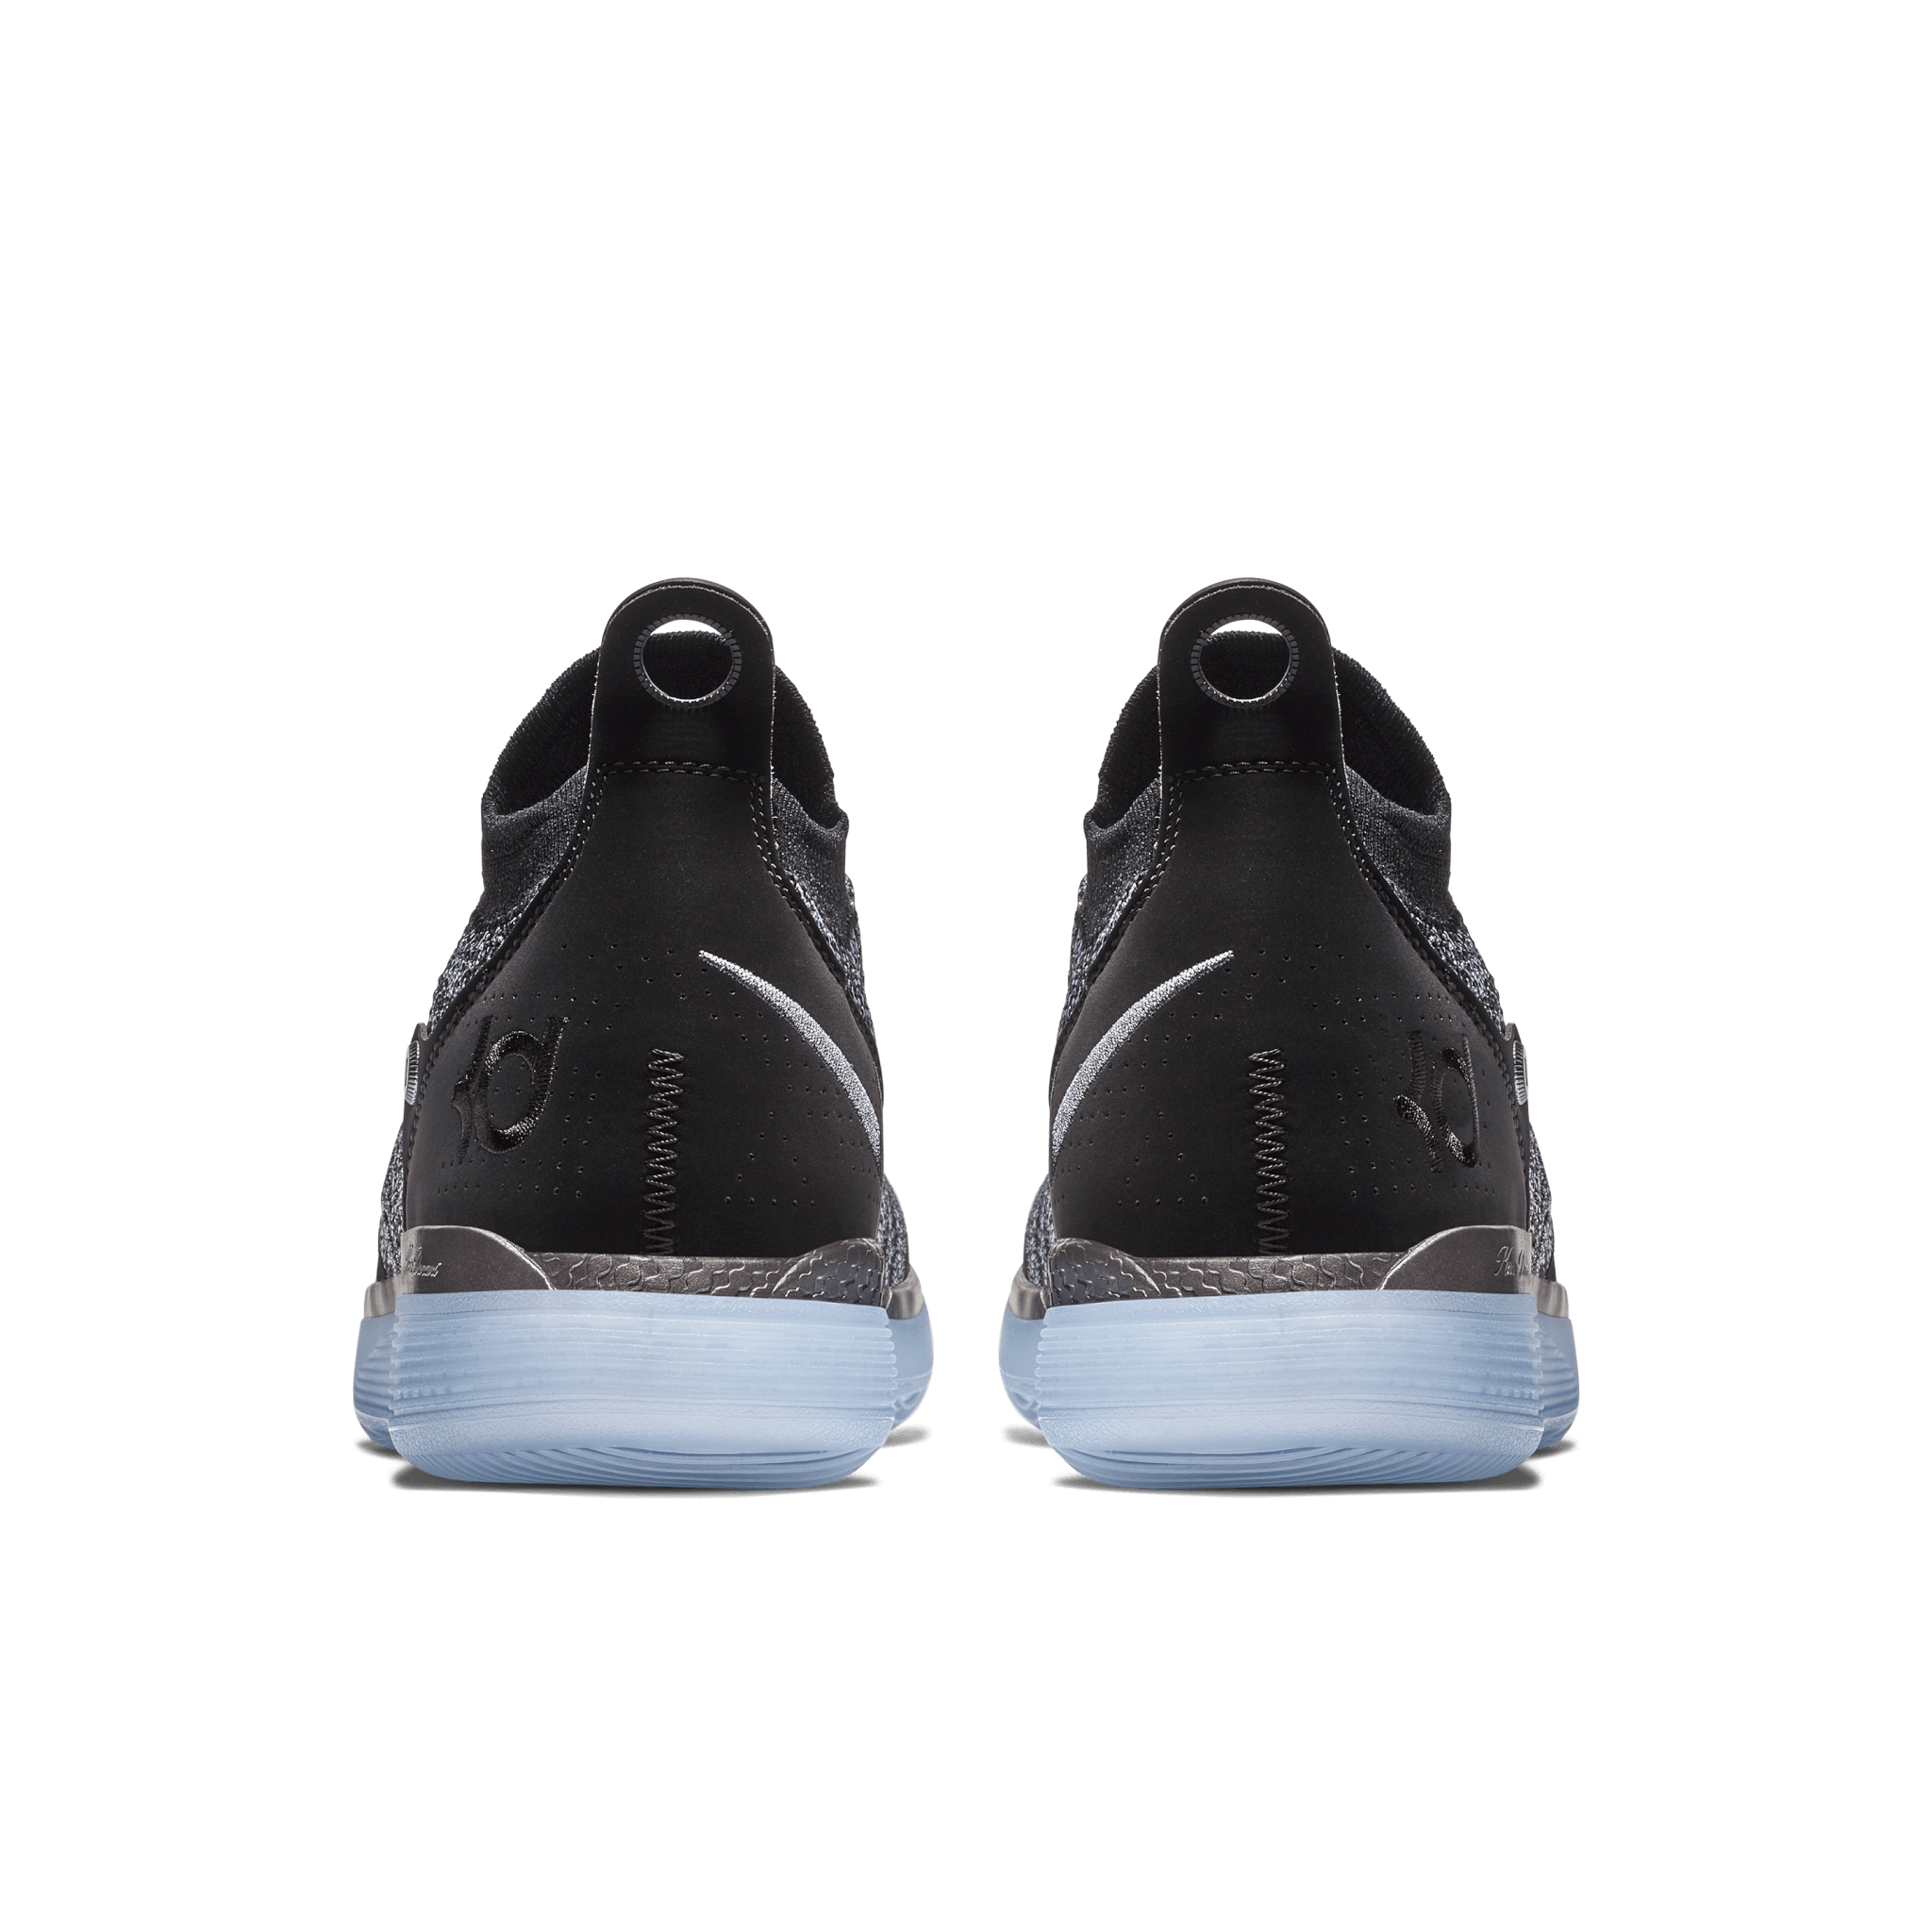 98604216a1247 Nike KD 11 Performance Review